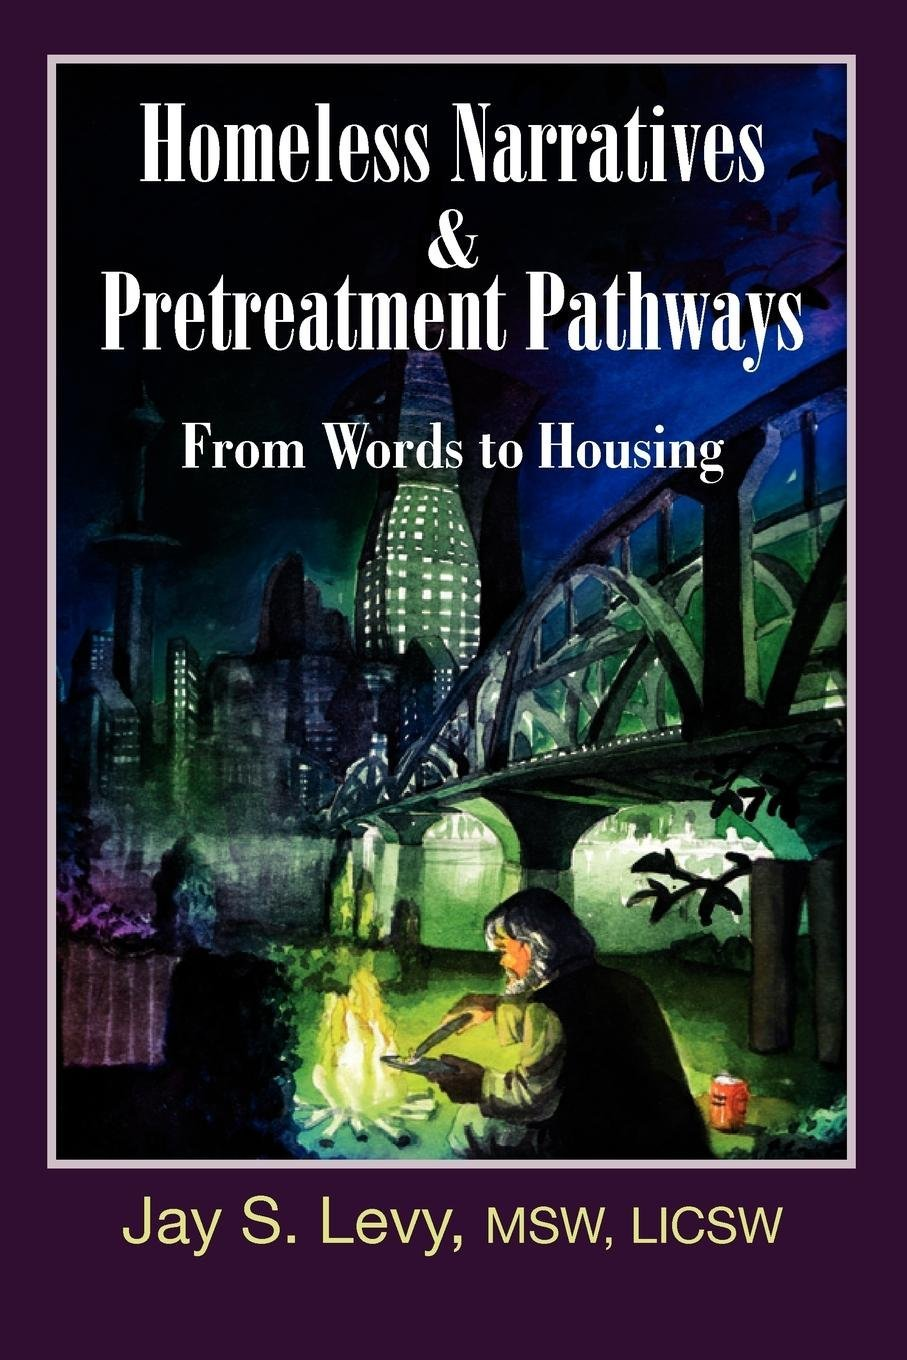 Image result for Homeless Narratives & Pretreatment Pathways From Words to Housing